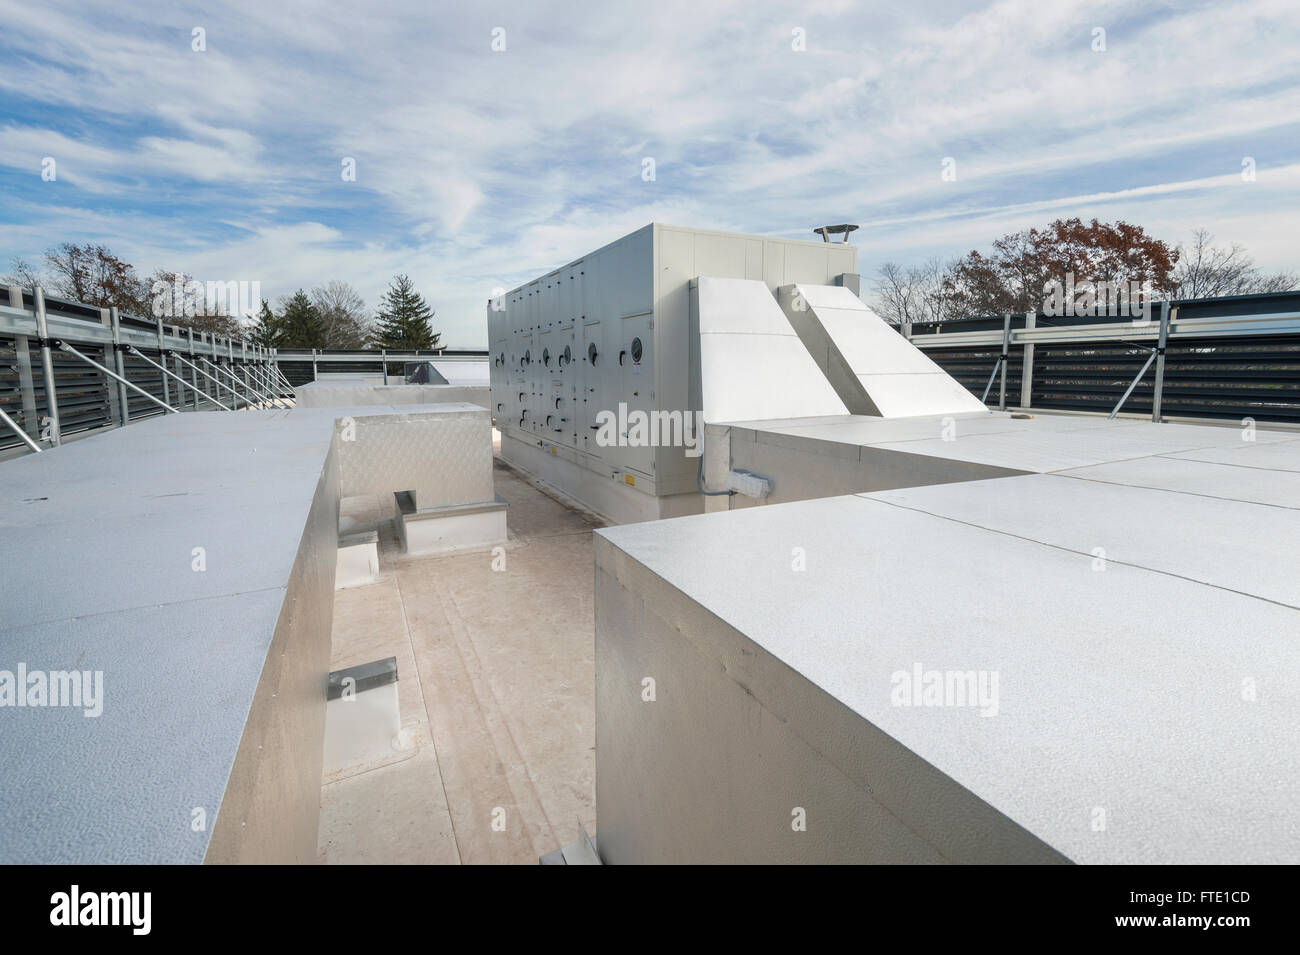 Large New Rooftop Ductwork - Stock Image